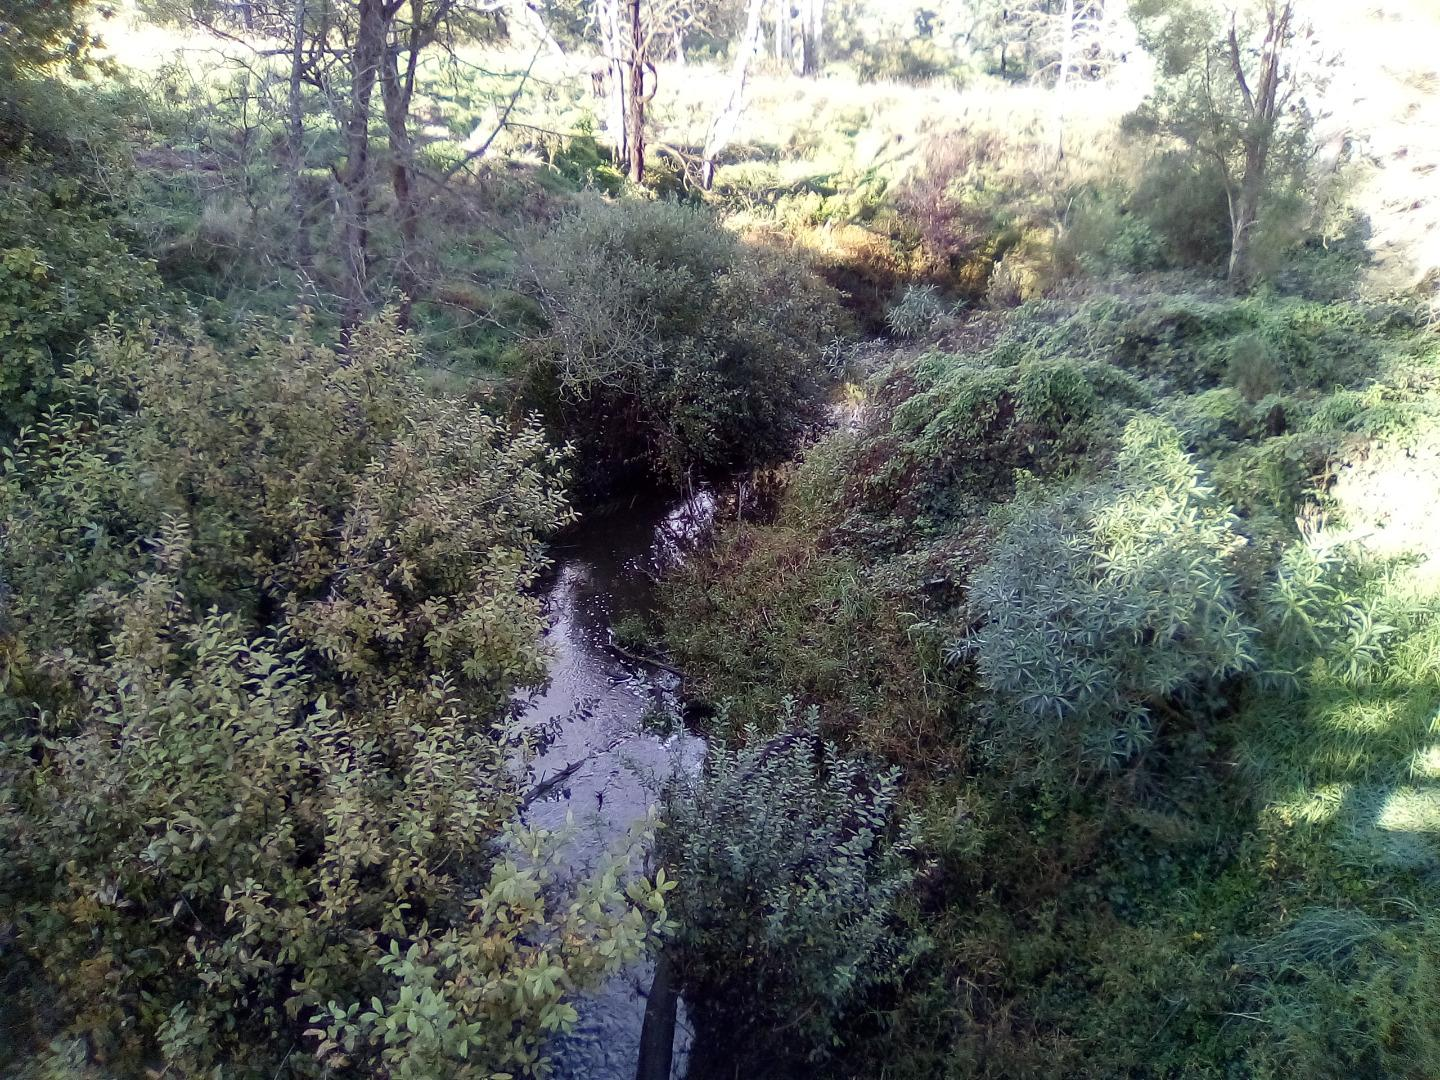 Looking south from bridge